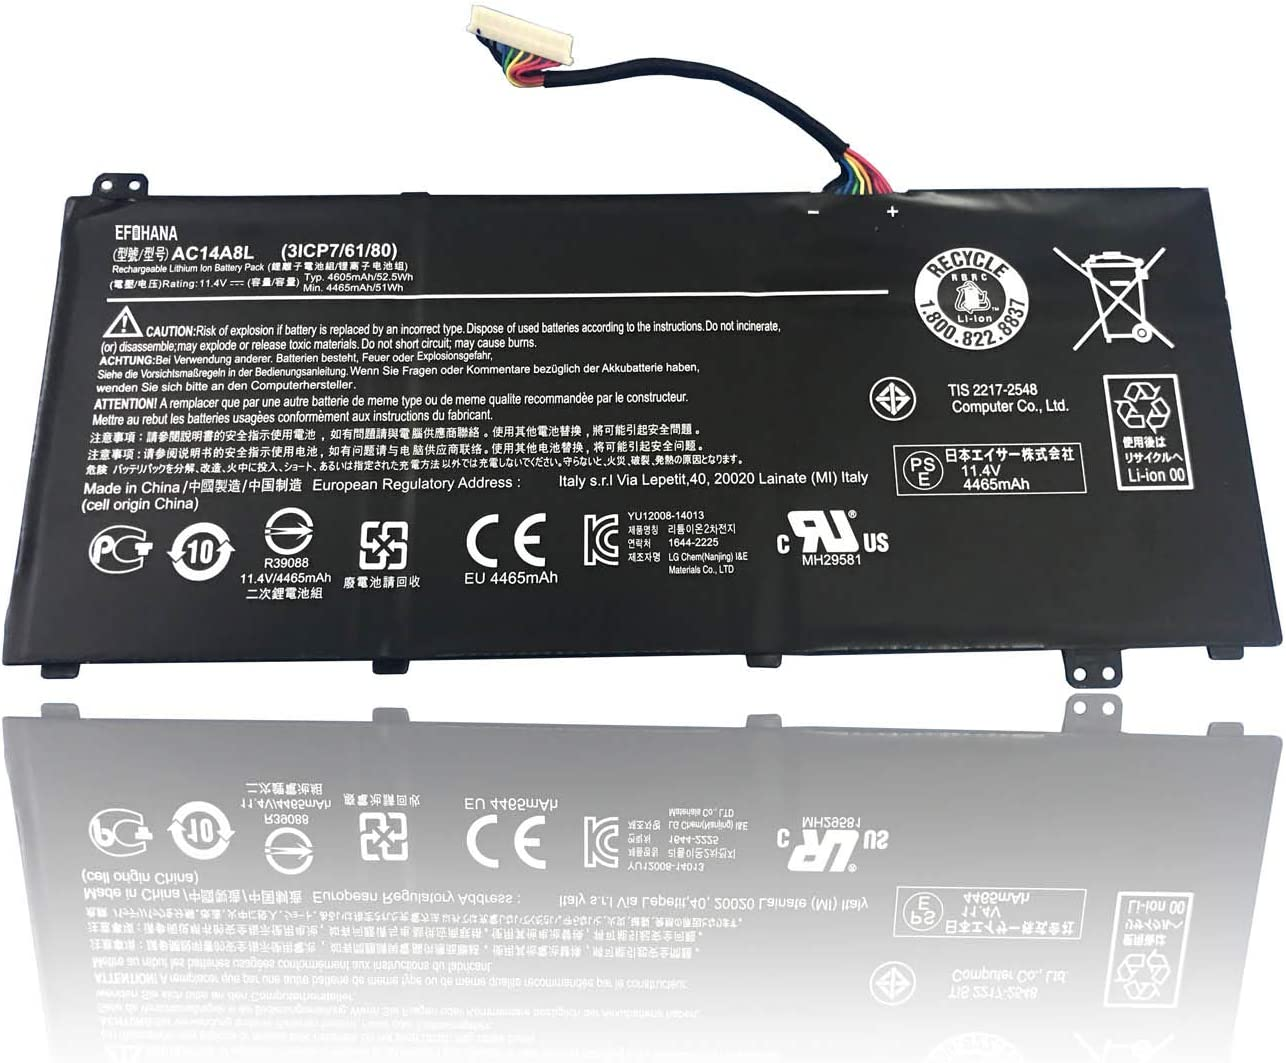 efohana AC14A8L Laptop Battery Replacement for Acer Aspire N7-591G-70TG V15 Nitro VN7-591G V17 MS2395 VN7-591G VN7-791G Series Notebook 3ICP7/61/80 11.4V 52.5Wh 4605mAh